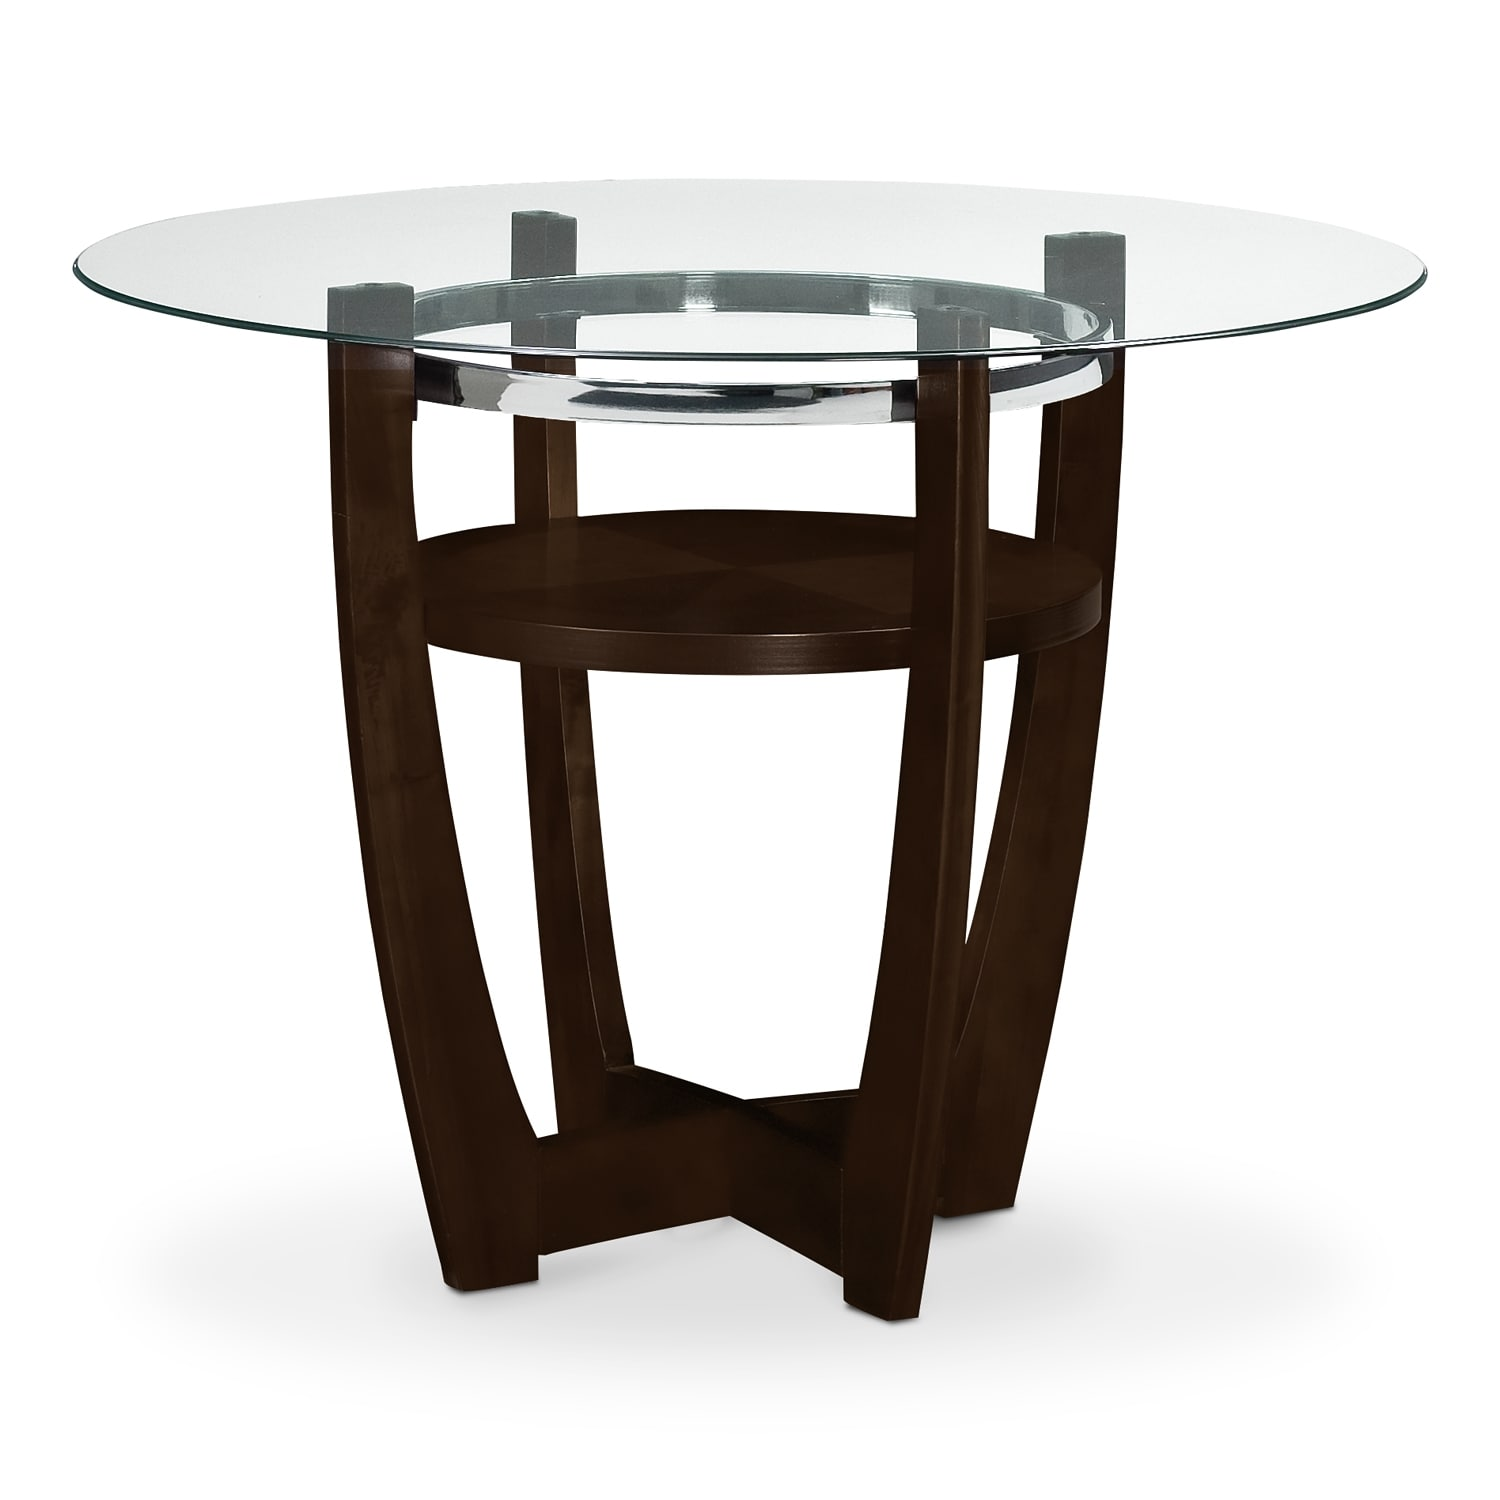 signature furniture alcove ii dining room counter height table